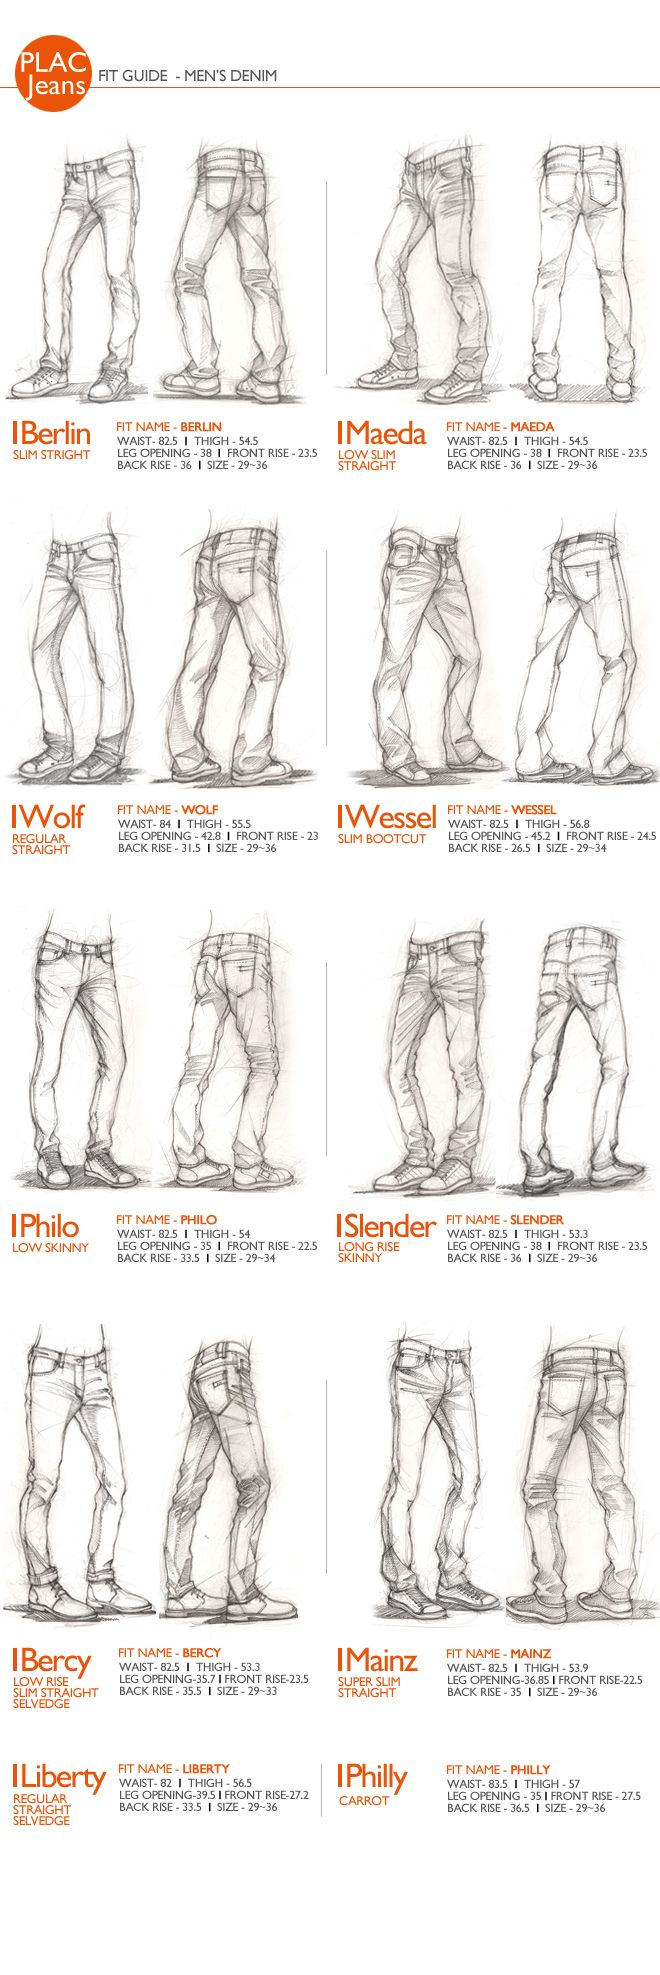 PLAC Jeans denim Style sketchings